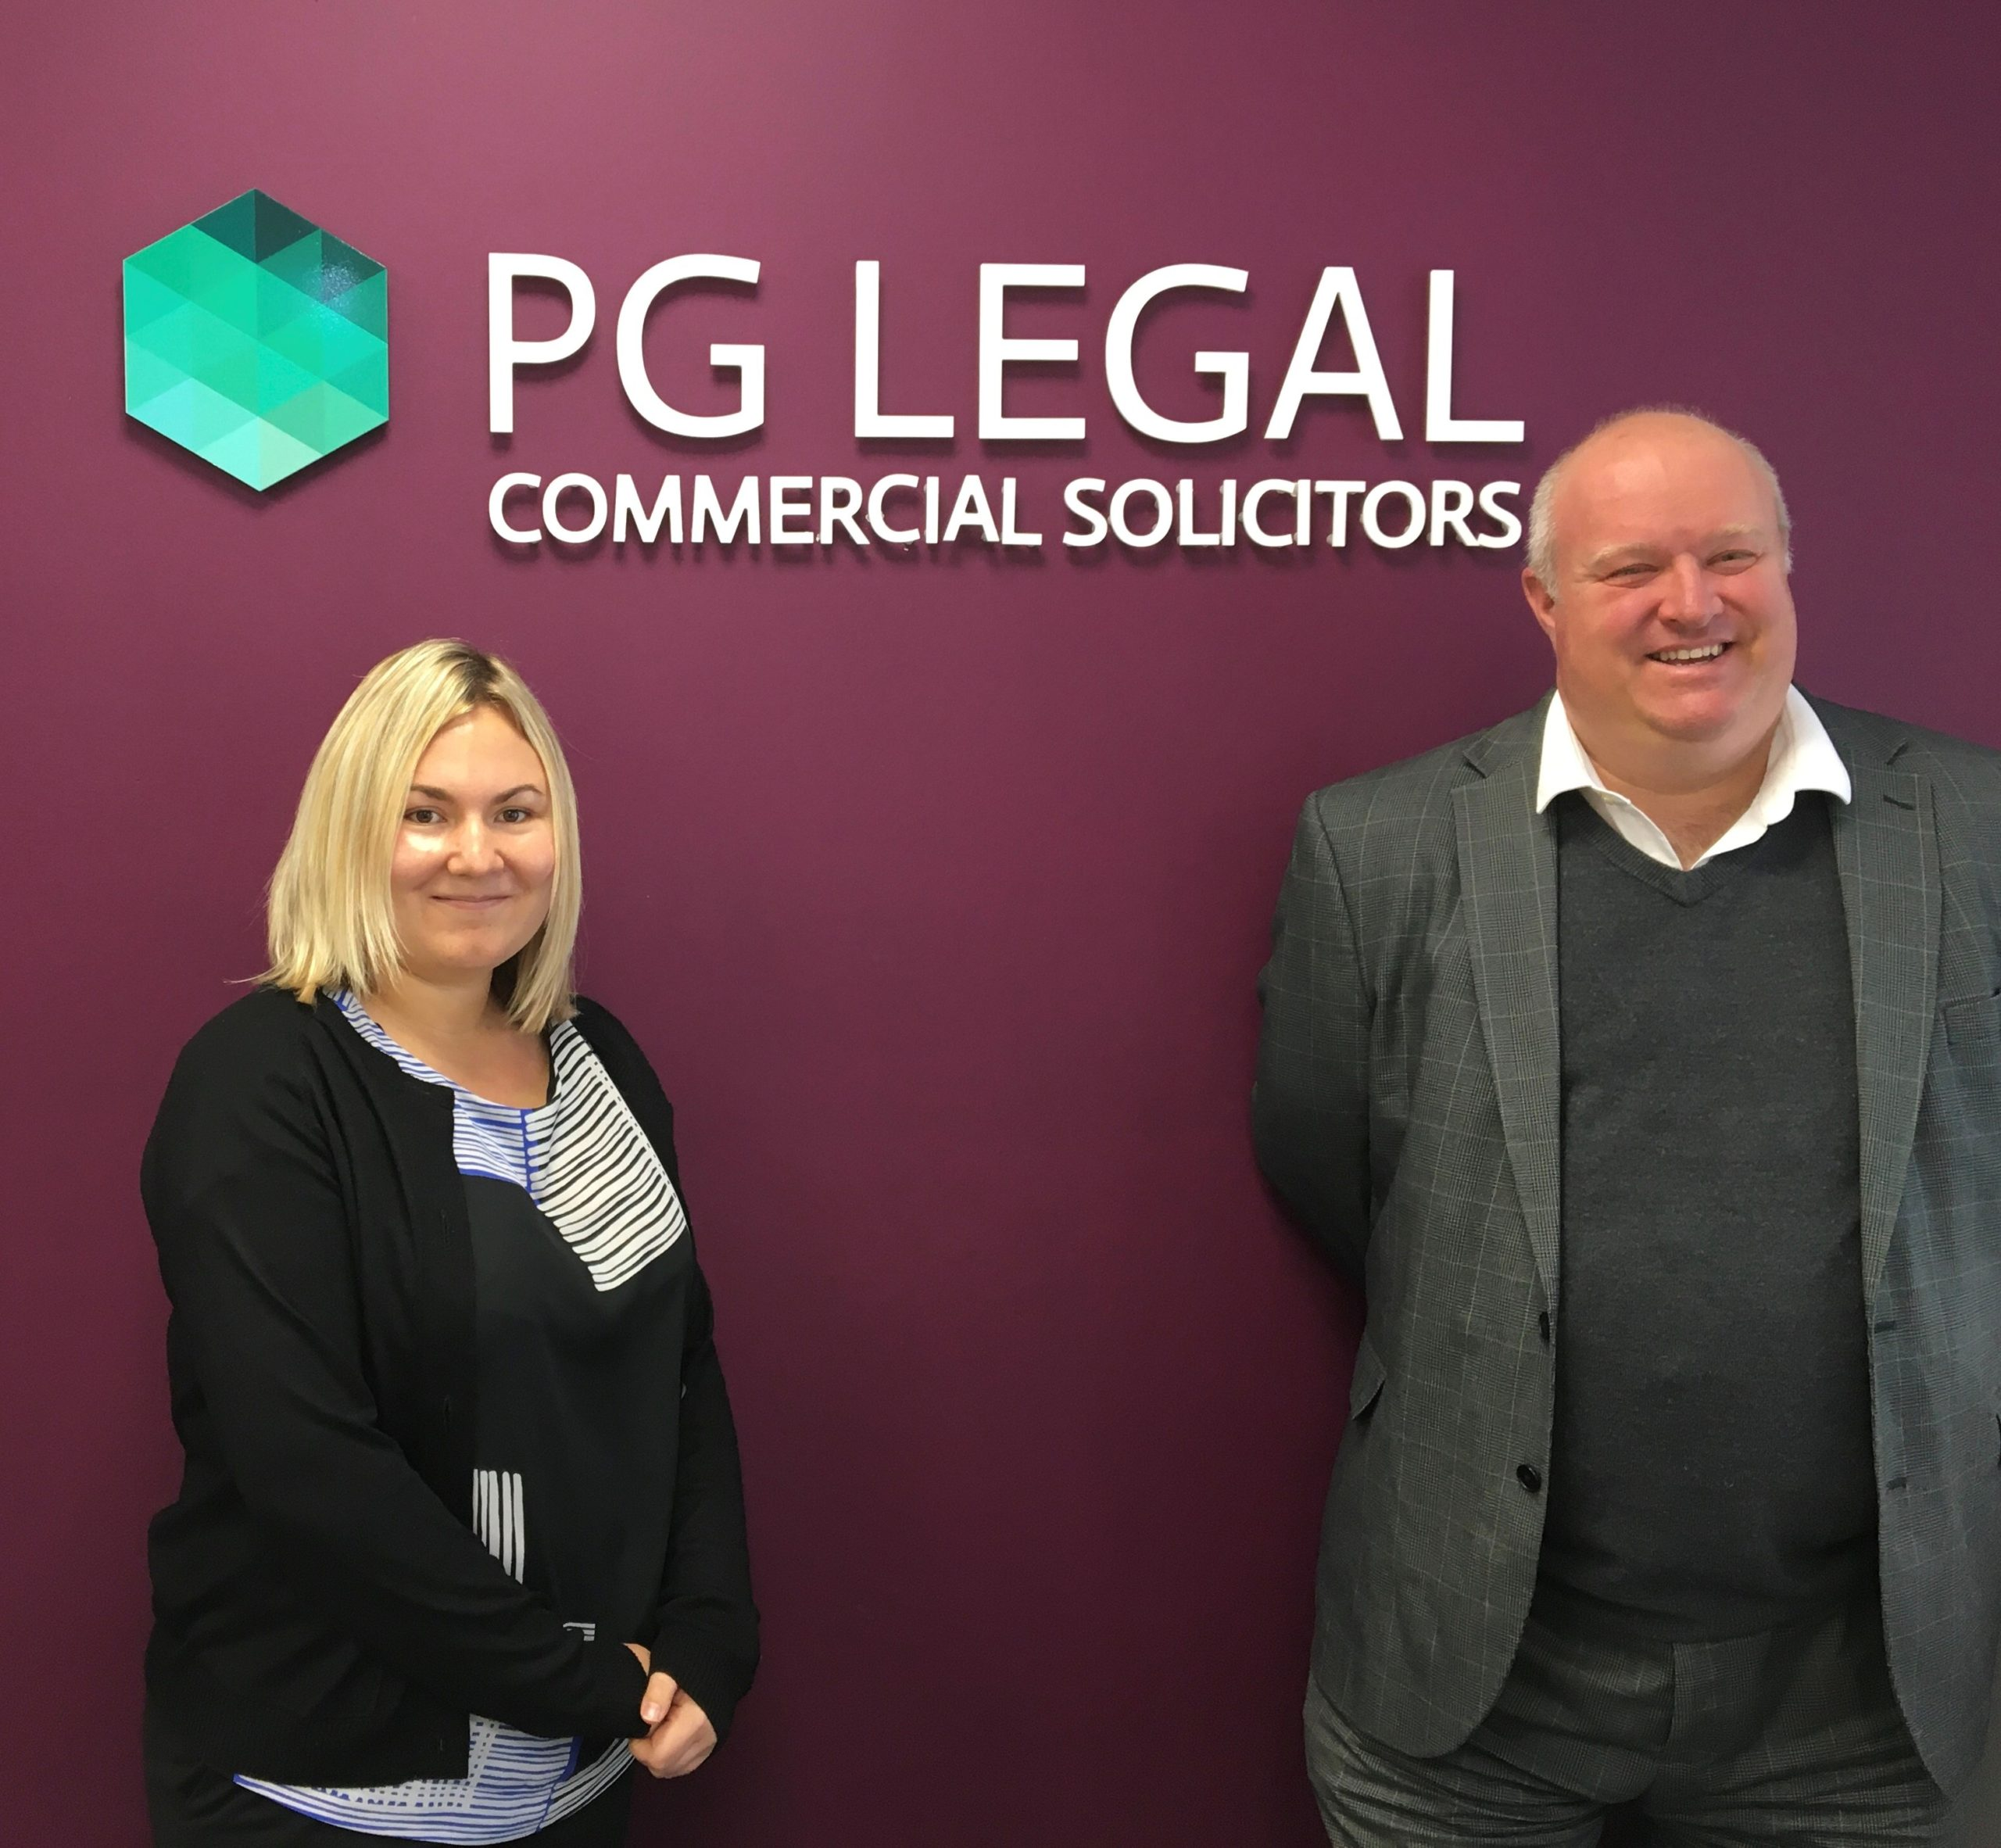 PG Legal welcomes litigation solicitor